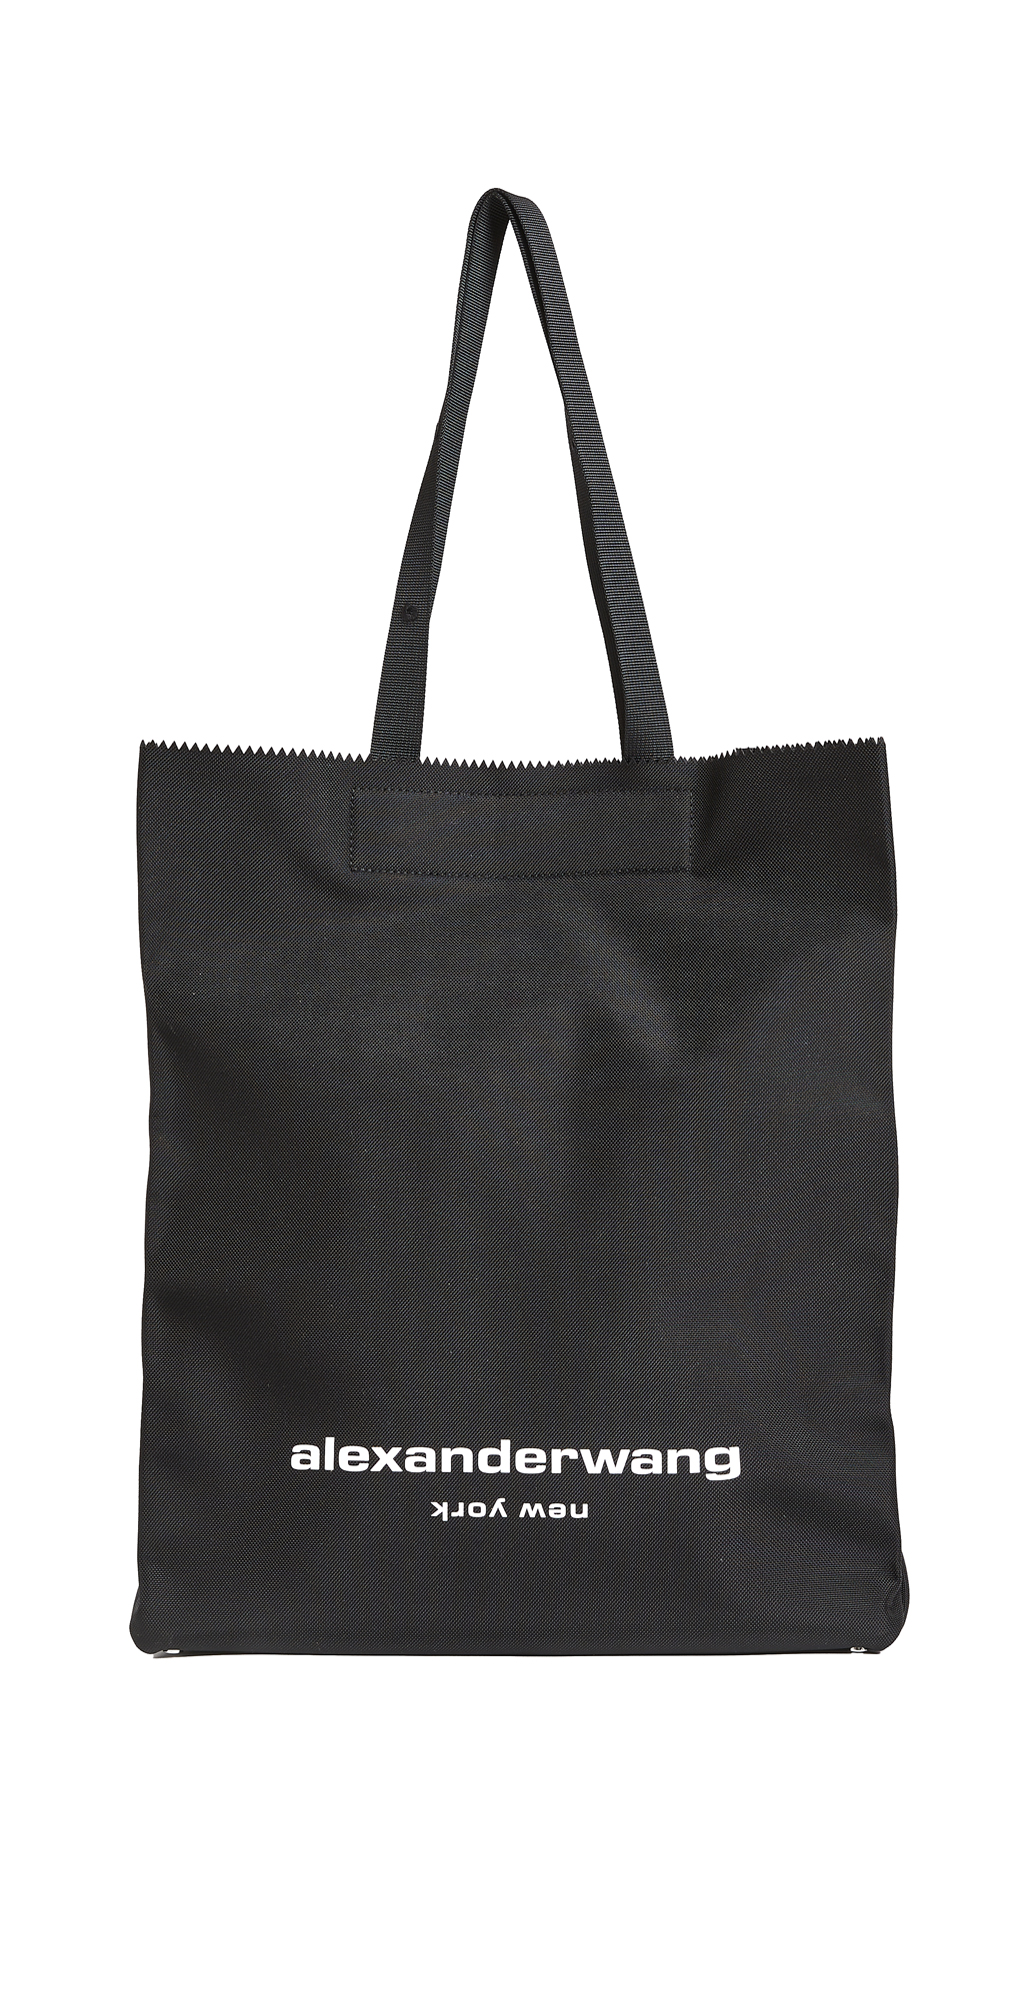 Alexander Wang Lunch Bag Tote